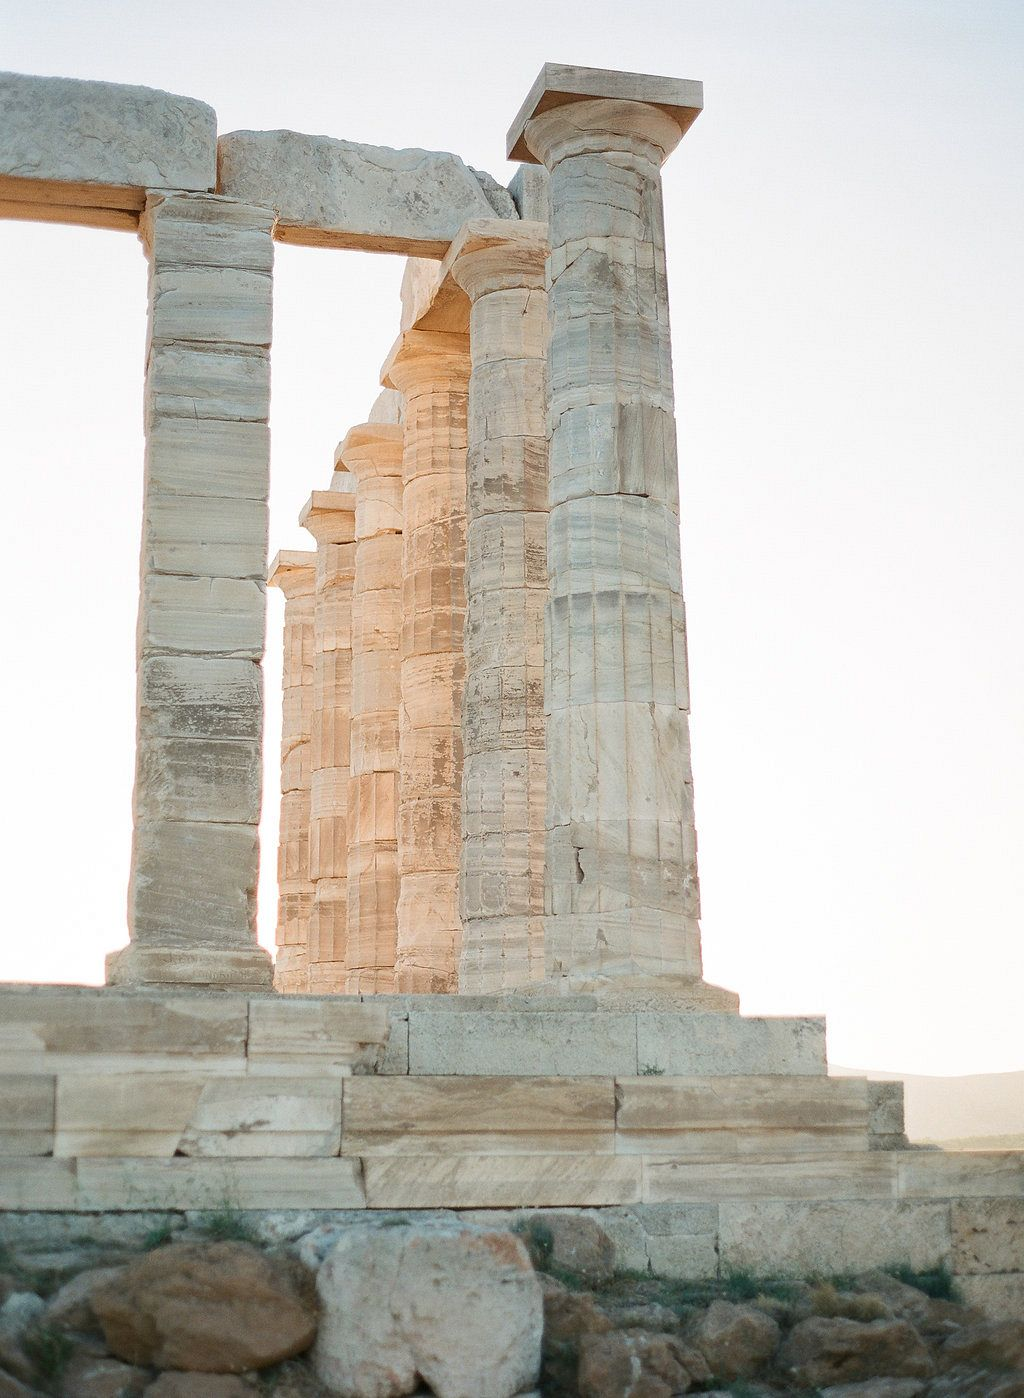 Jennifer and Alexis' Wedding at Temple of Poseidon, Greece